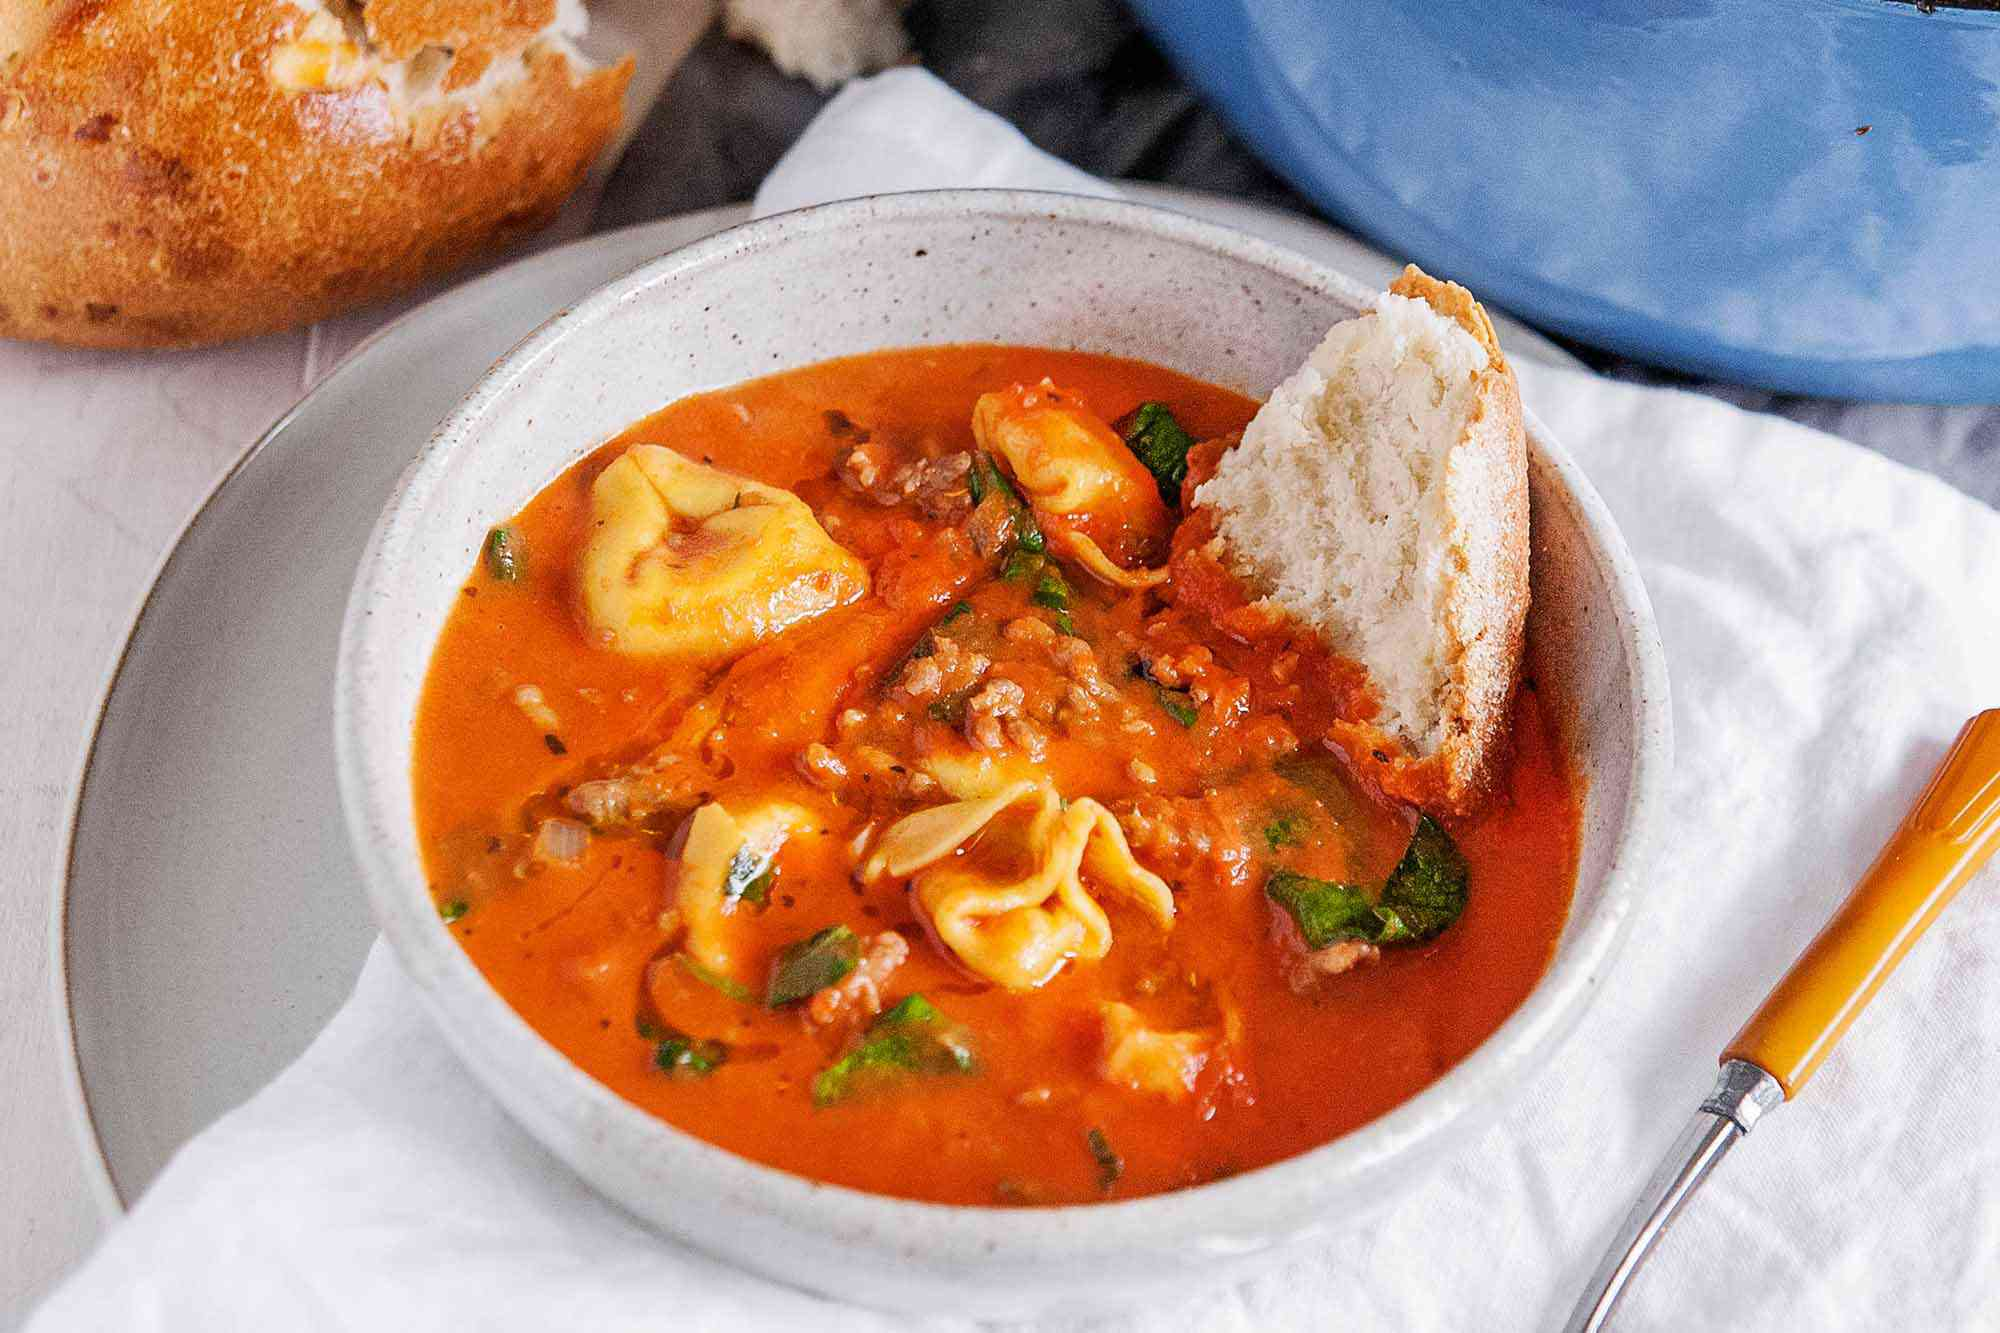 Italian Sausage Tortellini Soup - white bowl with tomato soup, fresh basil and cheese filled tortellini wtih a blue pot in the background